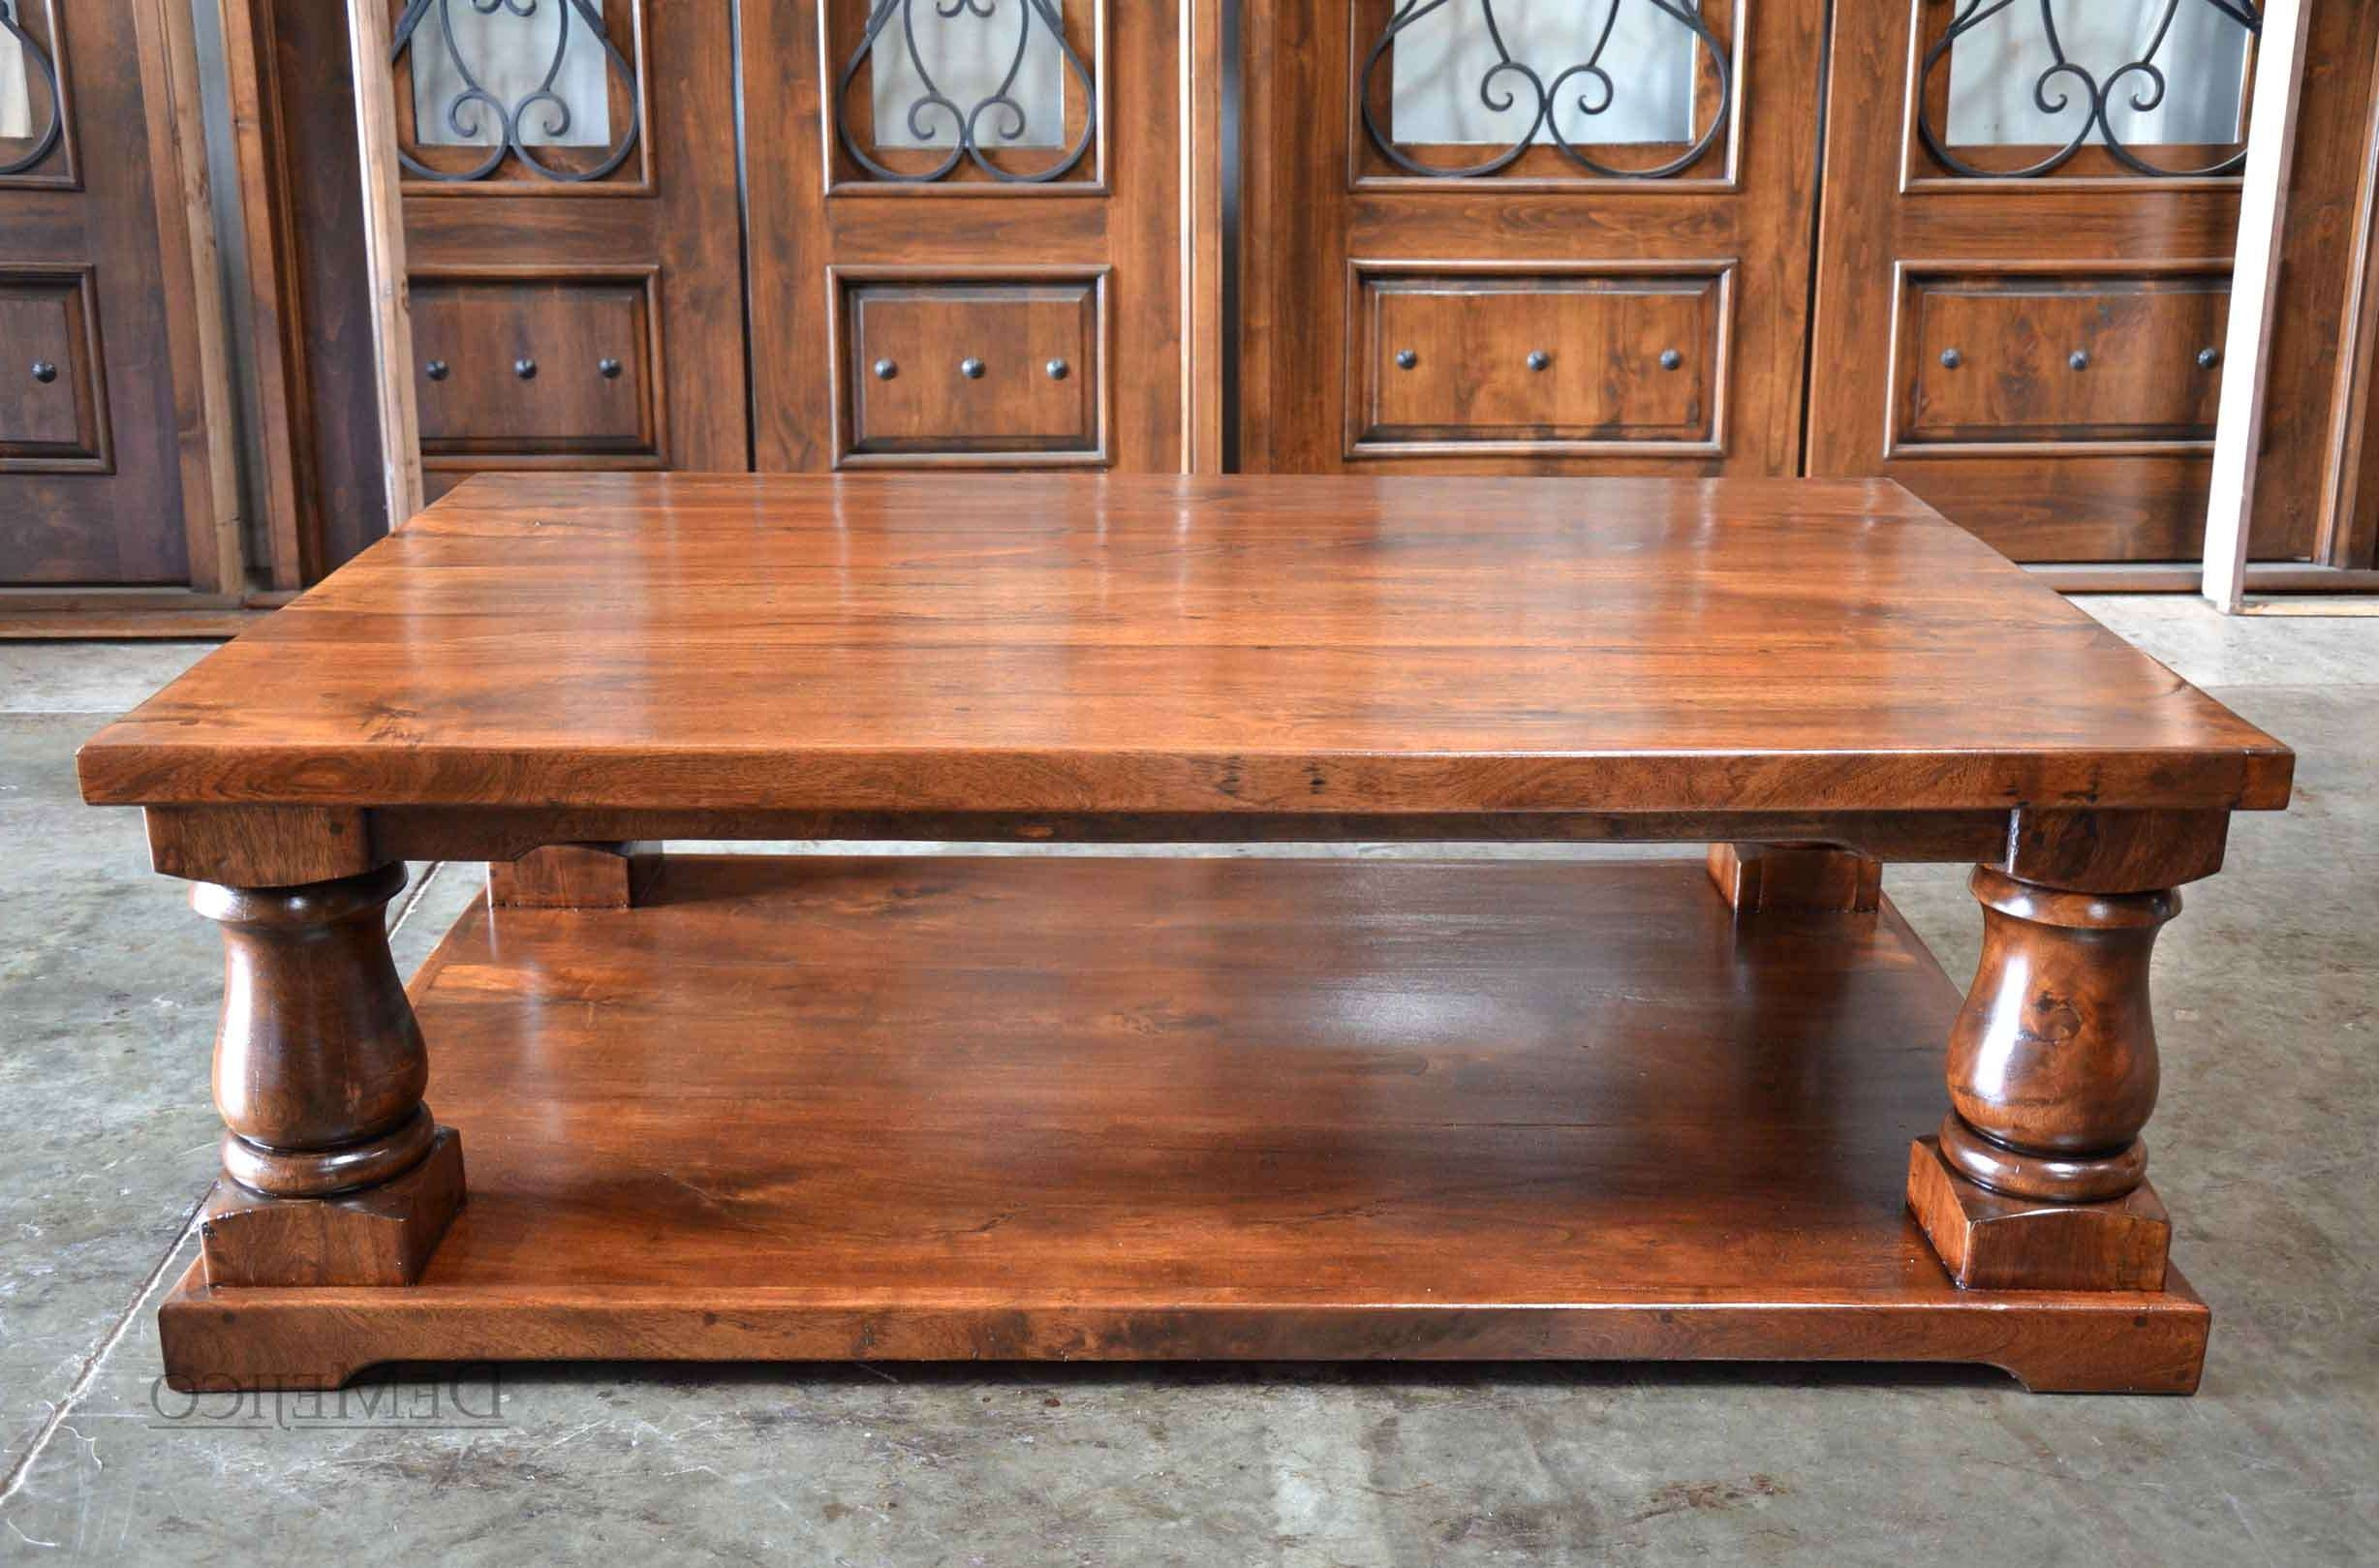 Latest Large Low Rustic Coffee Tables Regarding Coffee Table : Magnificent Large Wood Coffee Table Large Coffee (View 12 of 20)